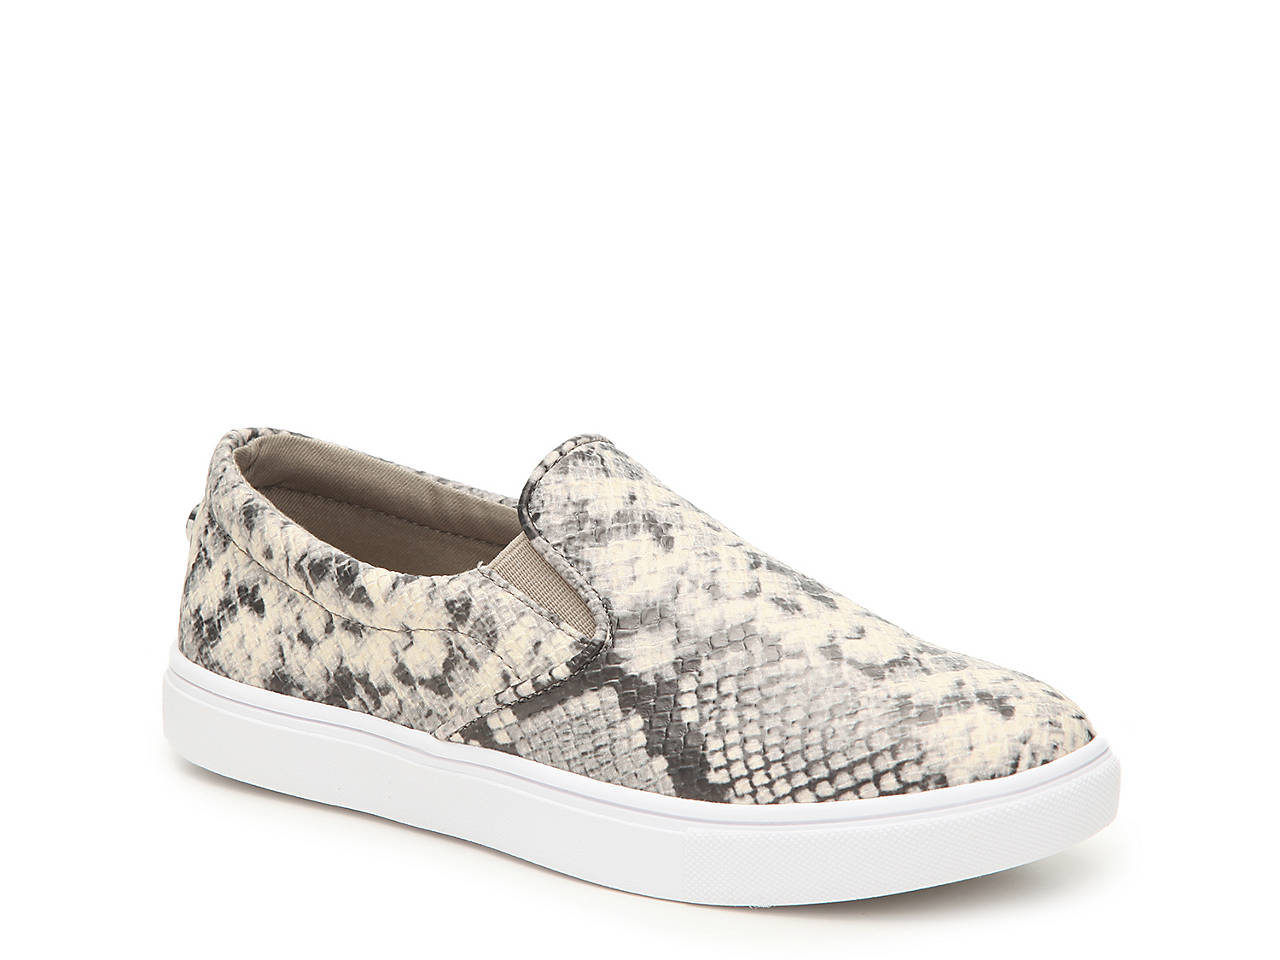 79bdaf39921 Steve Madden Ecentrc Slip-On Sneaker Women s Shoes